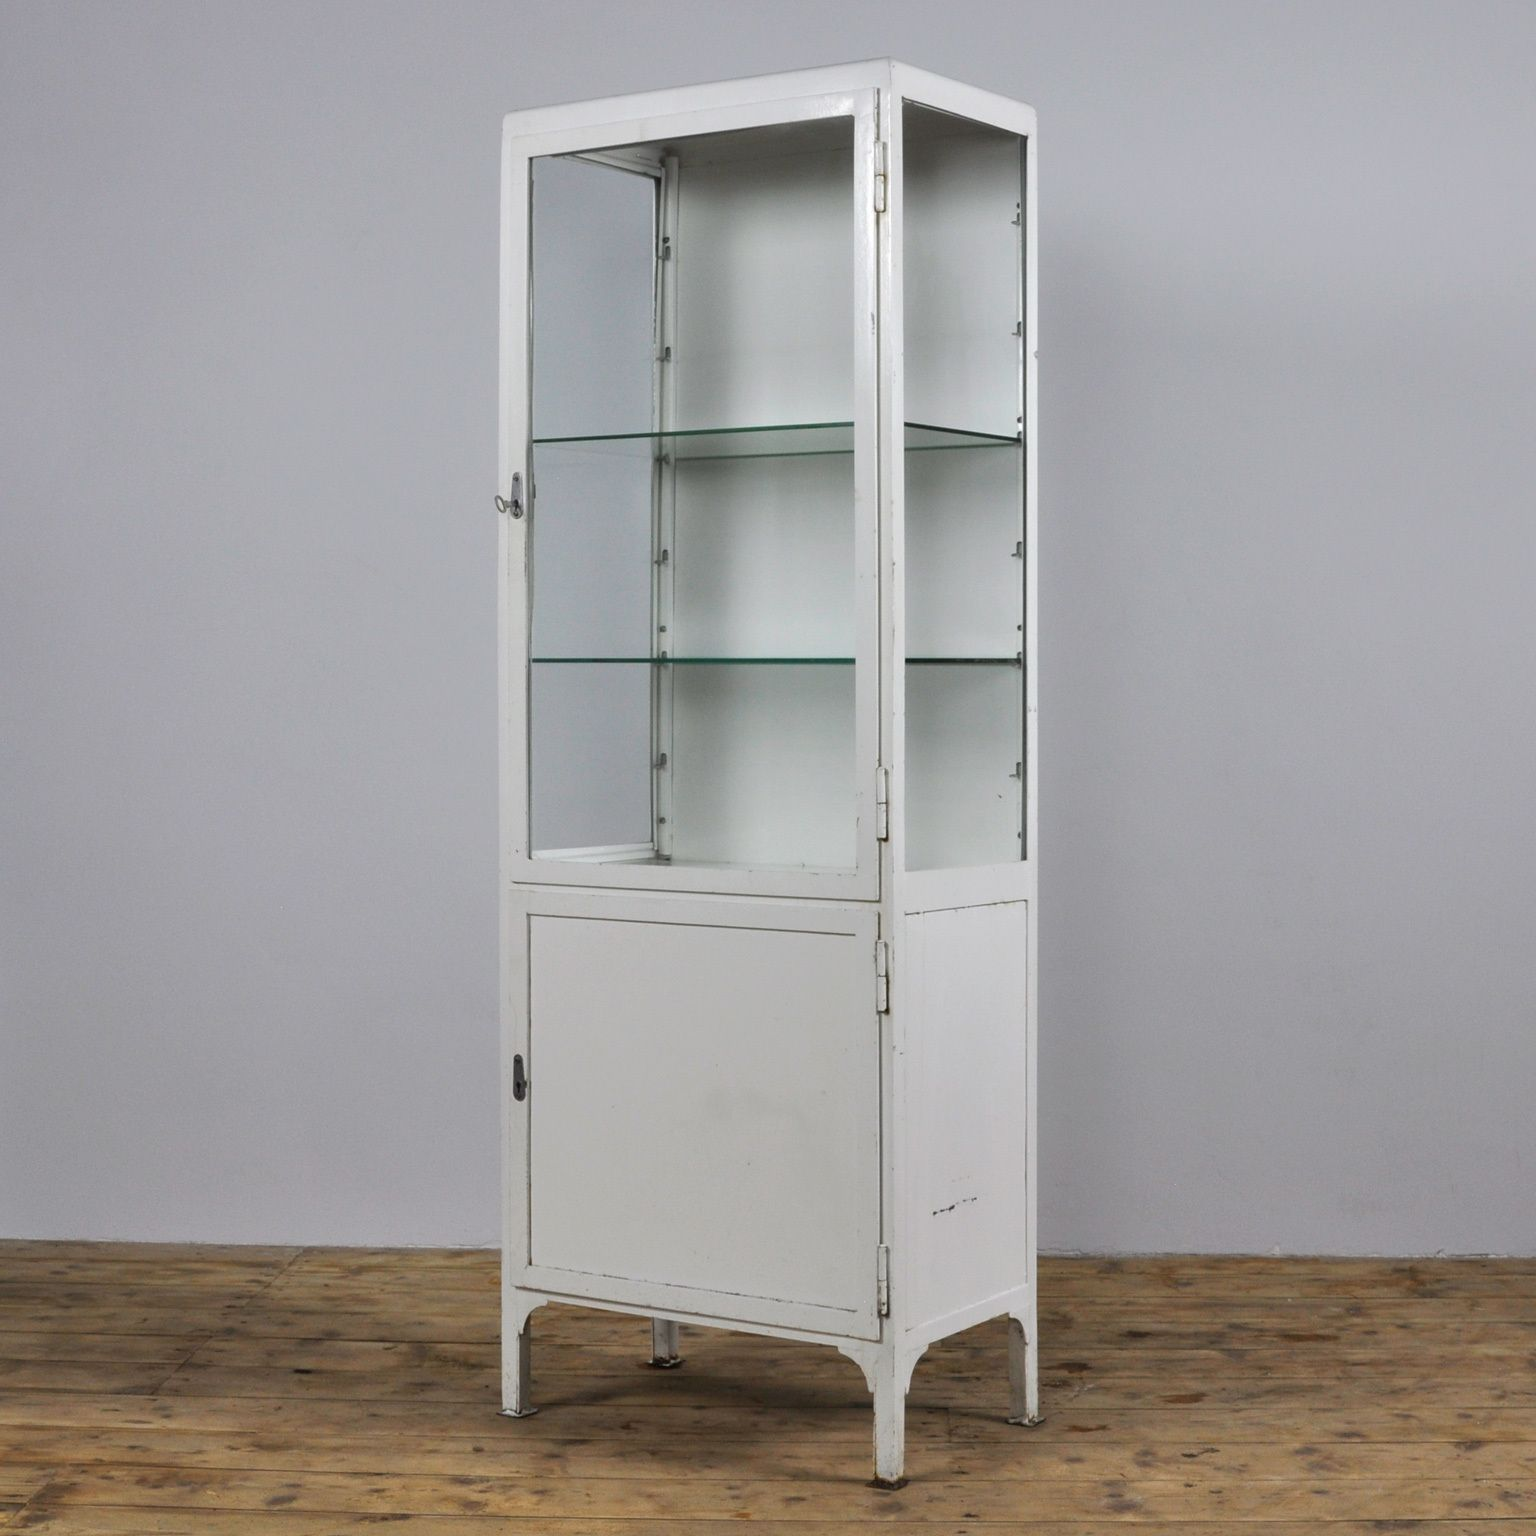 Vintage Iron And Glass Medicine Cabinet 1960s Vintage Medicine Cabinets Medical Cabinet Antique Medicine Cabinet [ jpg ]